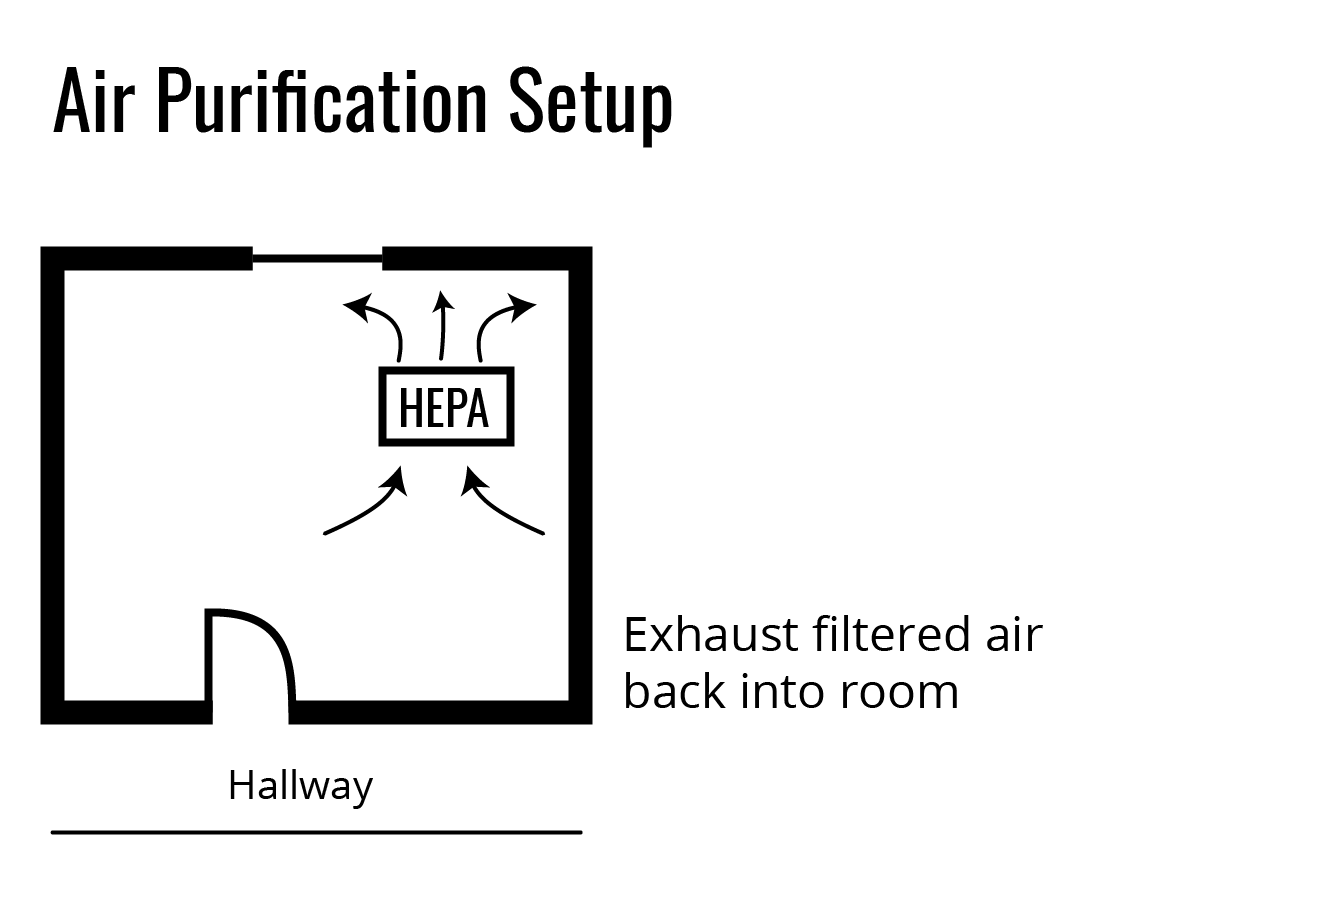 Air Purification Setup